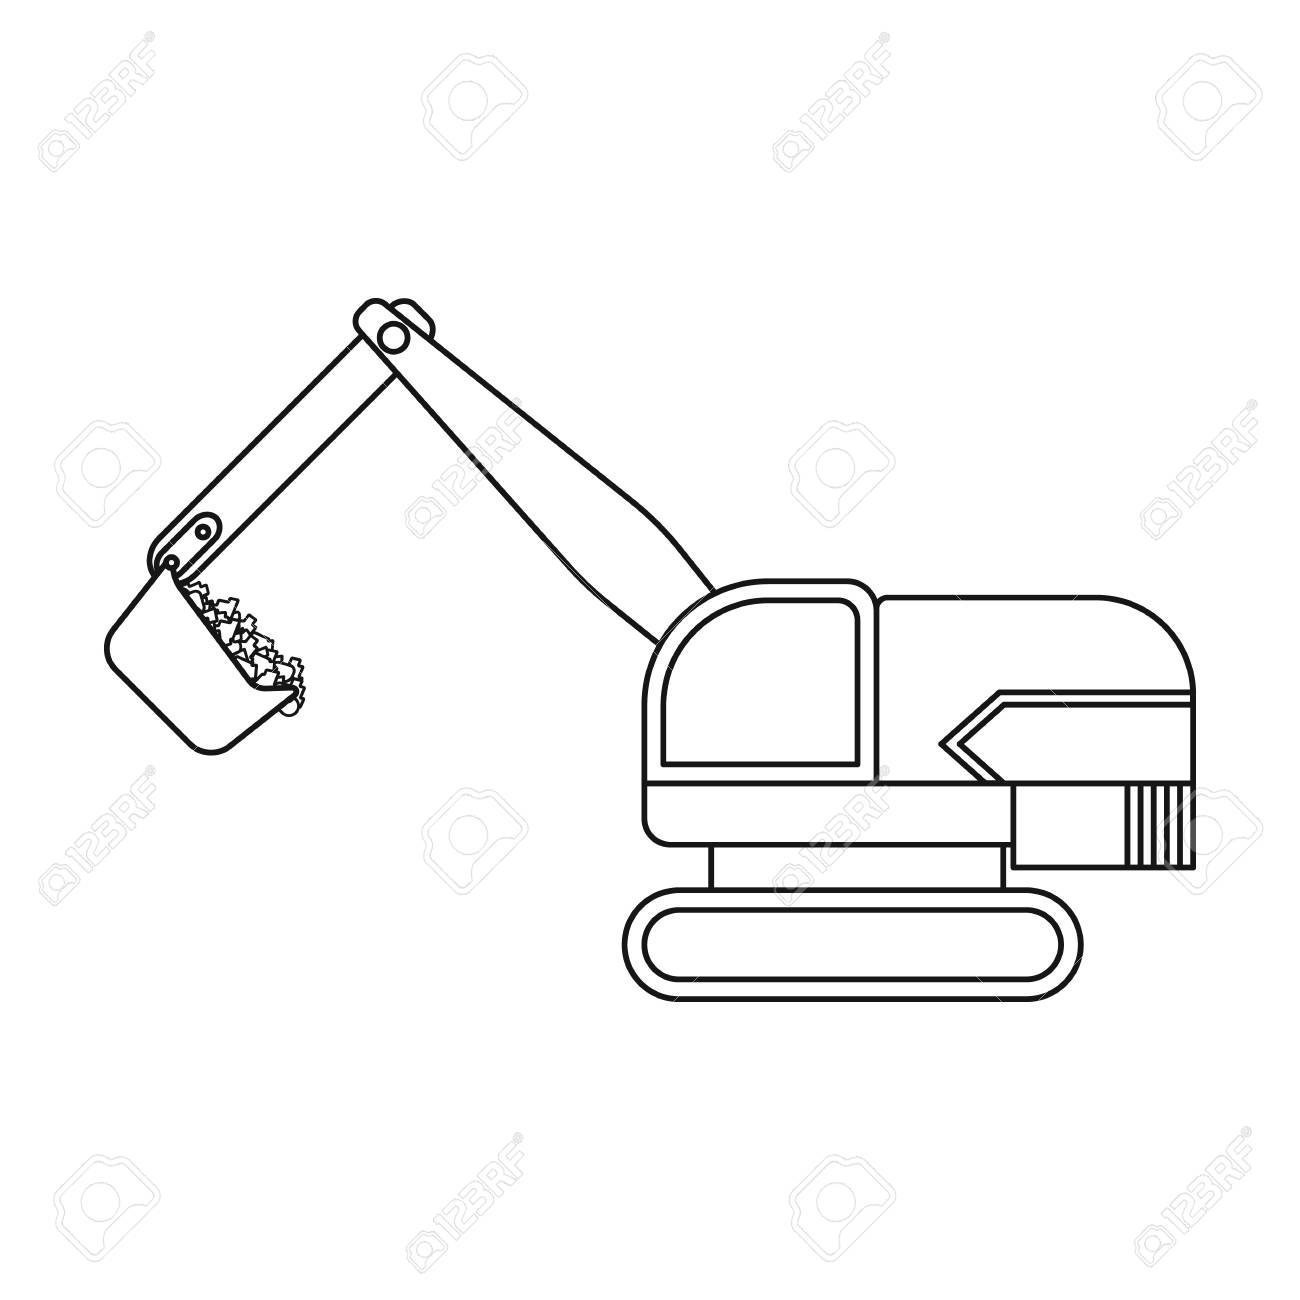 Excavator Icon In Outline Style Isolated On White Background Mine Symbol Vector Illustration Stock